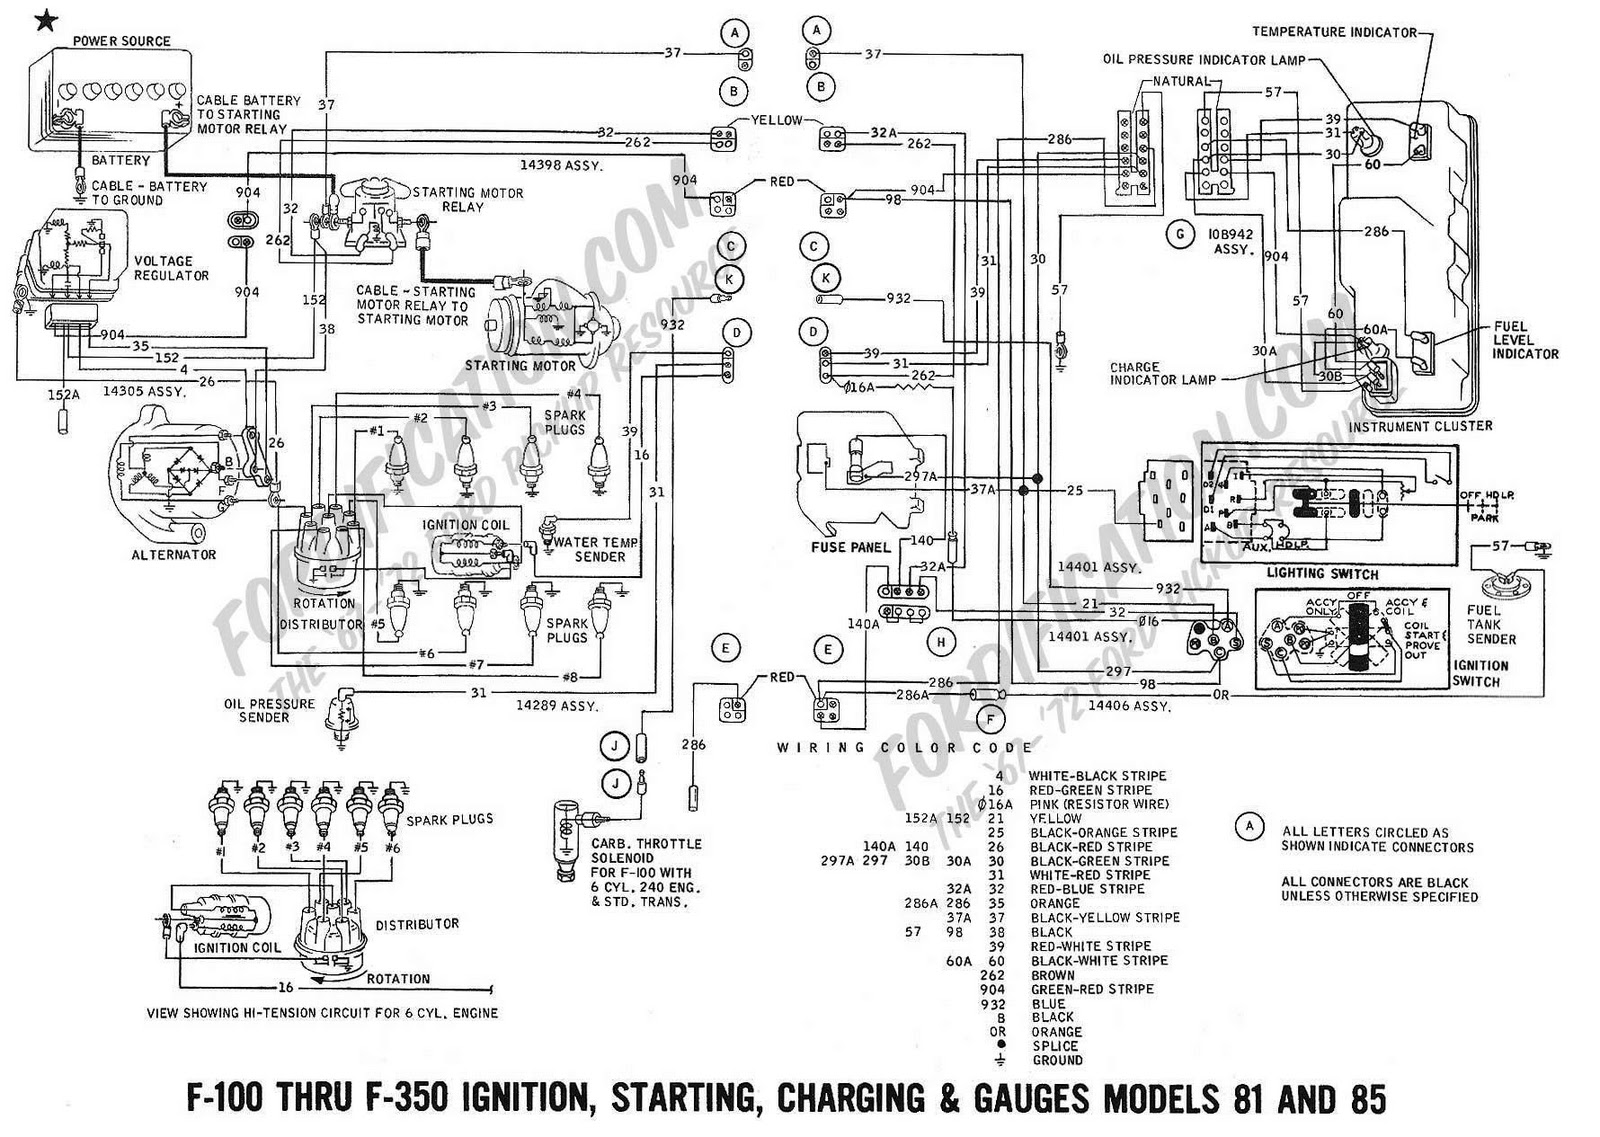 1969+Ford+F100 F350+Ignition%252C+Starting%252C+Charging%252C+And+Gauges+Wiring+Diagram 1968 ford f250 wiring diagram data wiring diagram blog